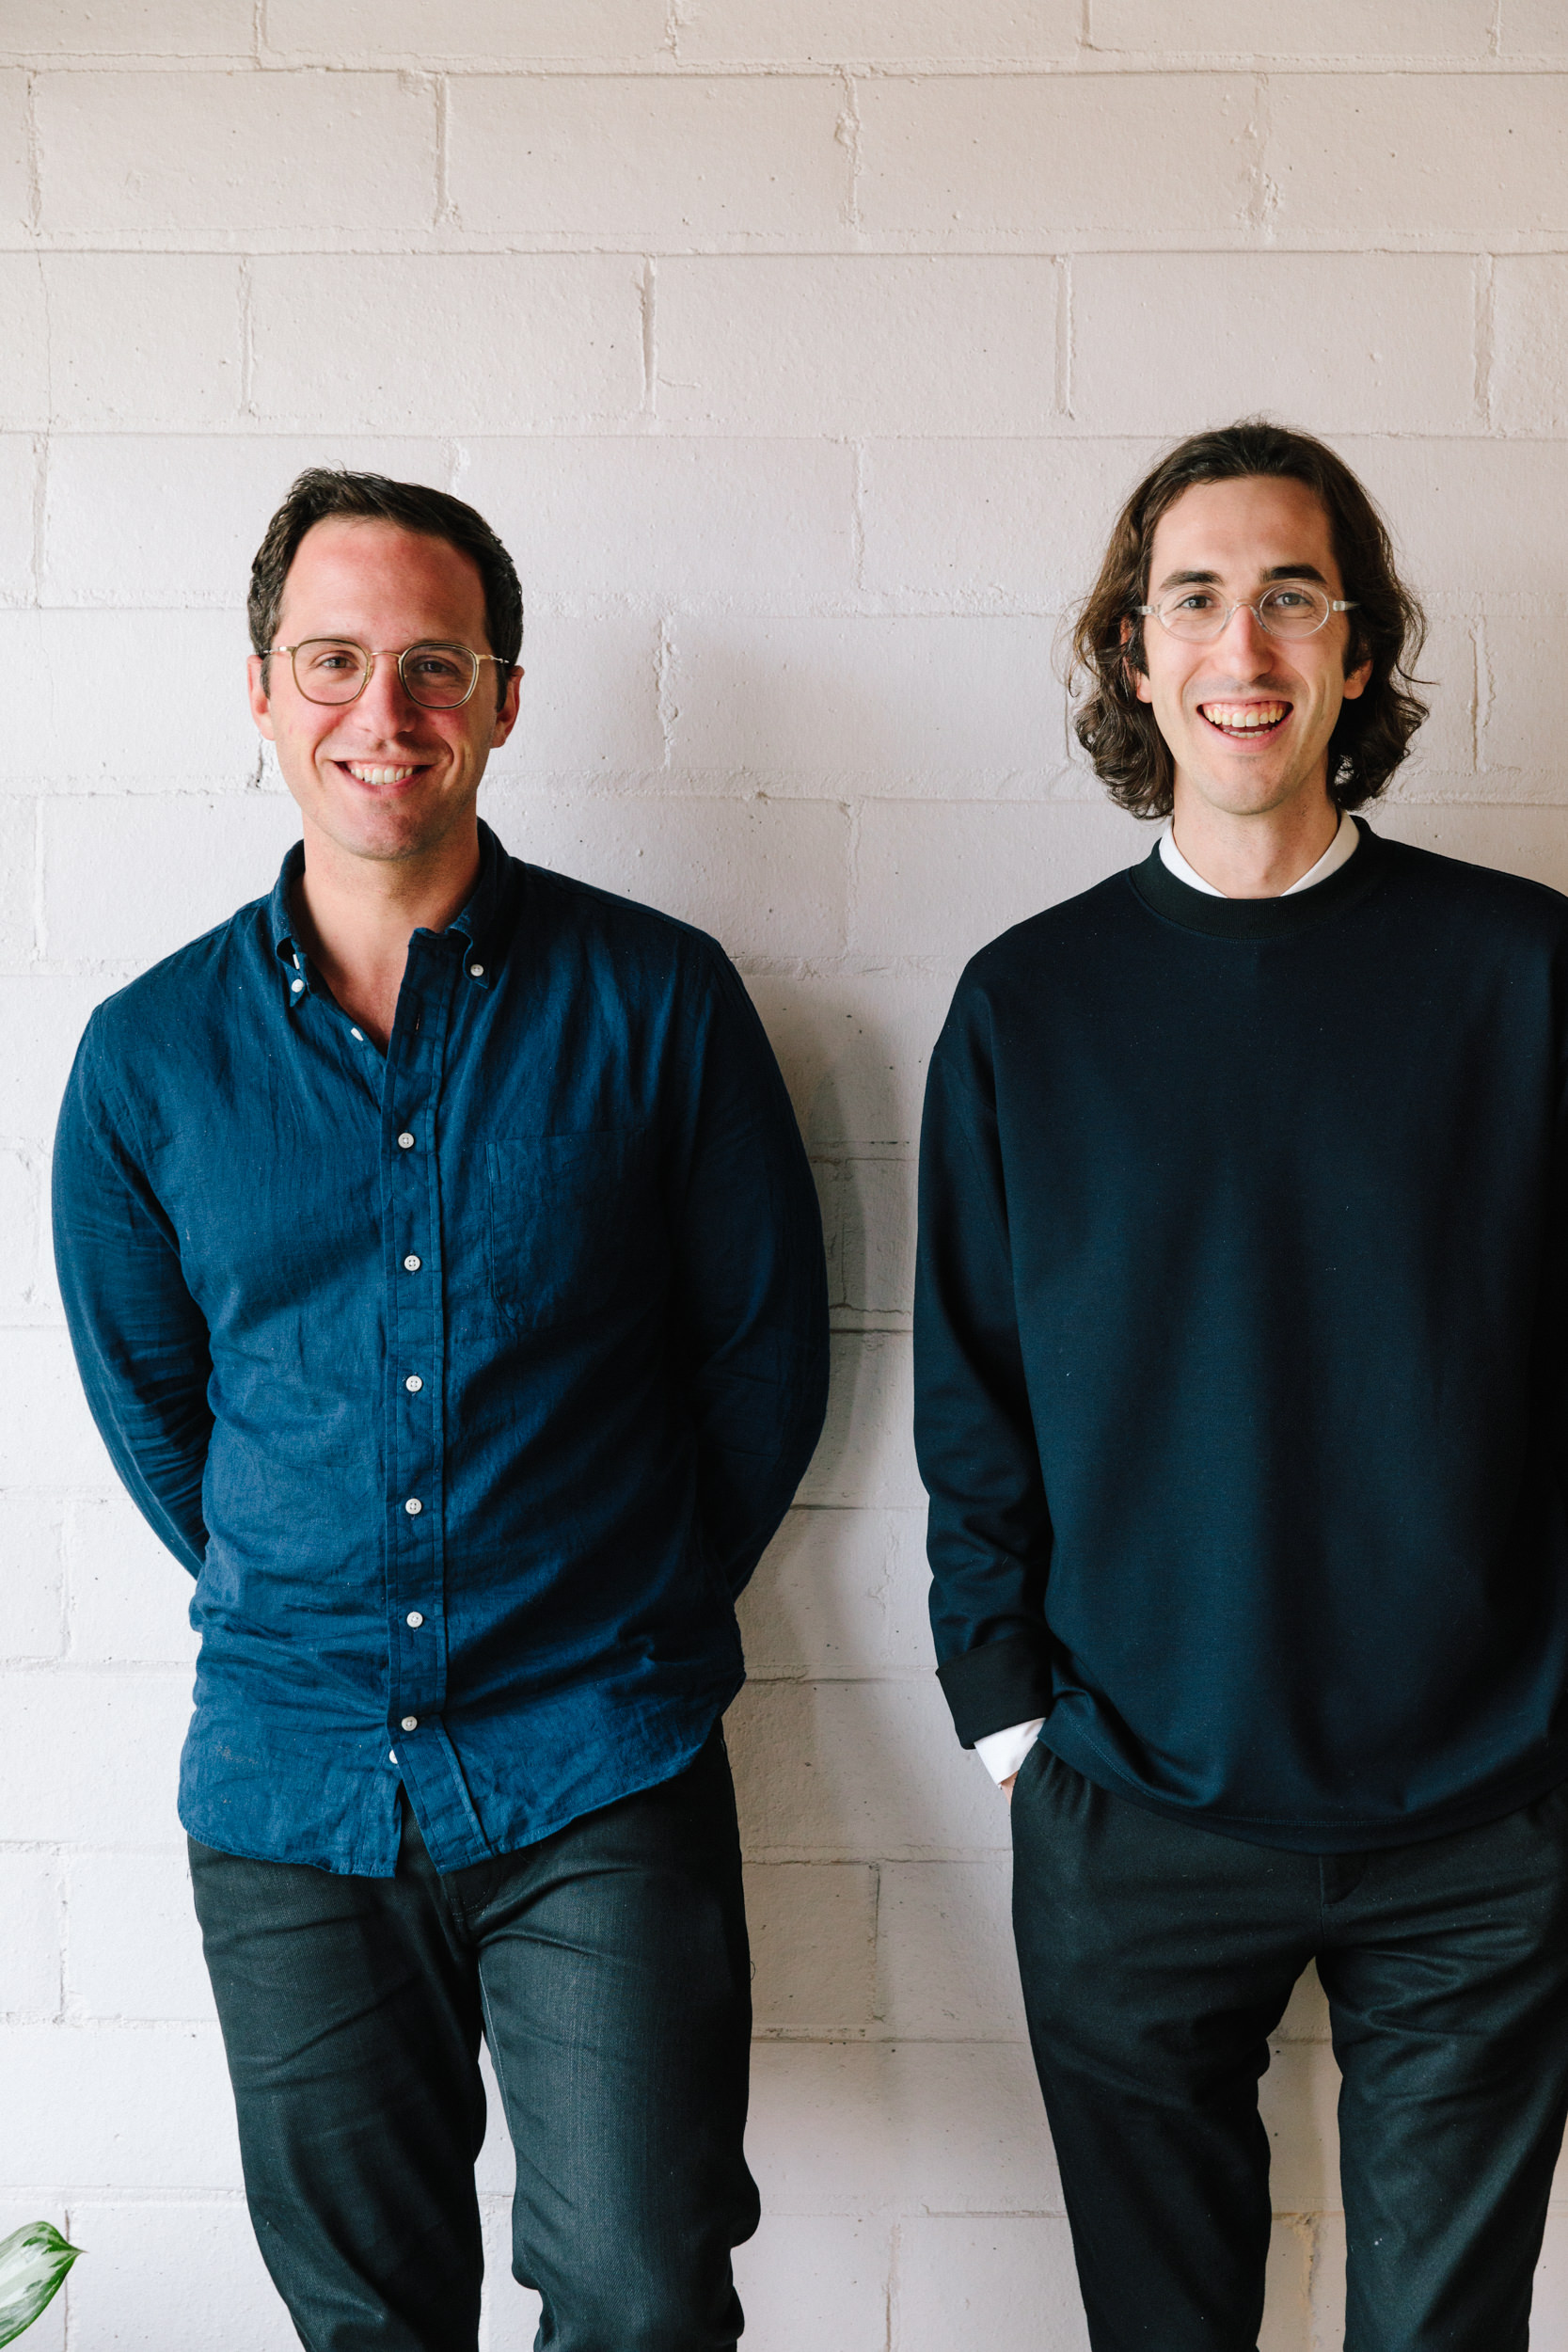 FLOYD: FOUNDERS KYLE HOFF AND ALEX O'DELL AT THE HQ